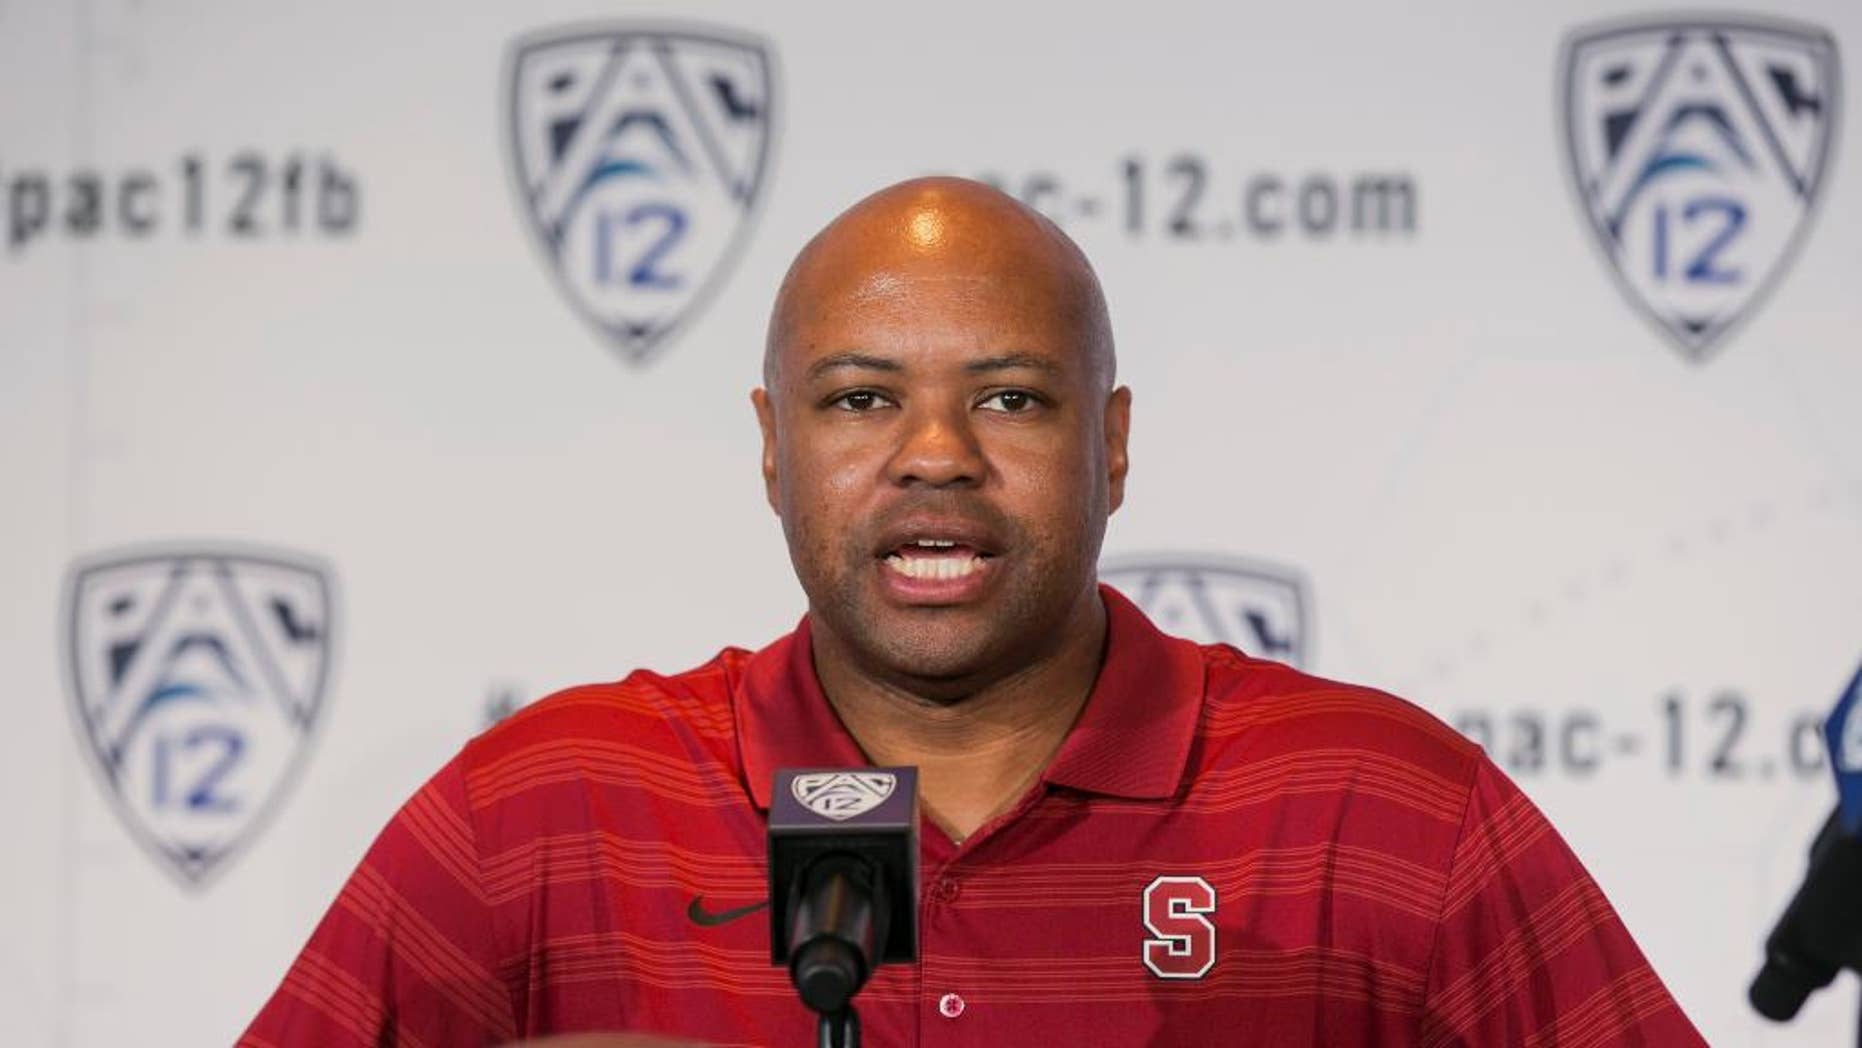 FILE - In this July 24, 2014, file photo, Stanford head coach David Shaw takes questions at the 2014 Pac-12 NCAA college football media days in Los Angeles. Nobody might have been happier when the Pac-12's preseason media poll picked Oregon to win the North Division than Stanford coach Shaw and his players. (AP Photo/Damian Dovarganes, File)